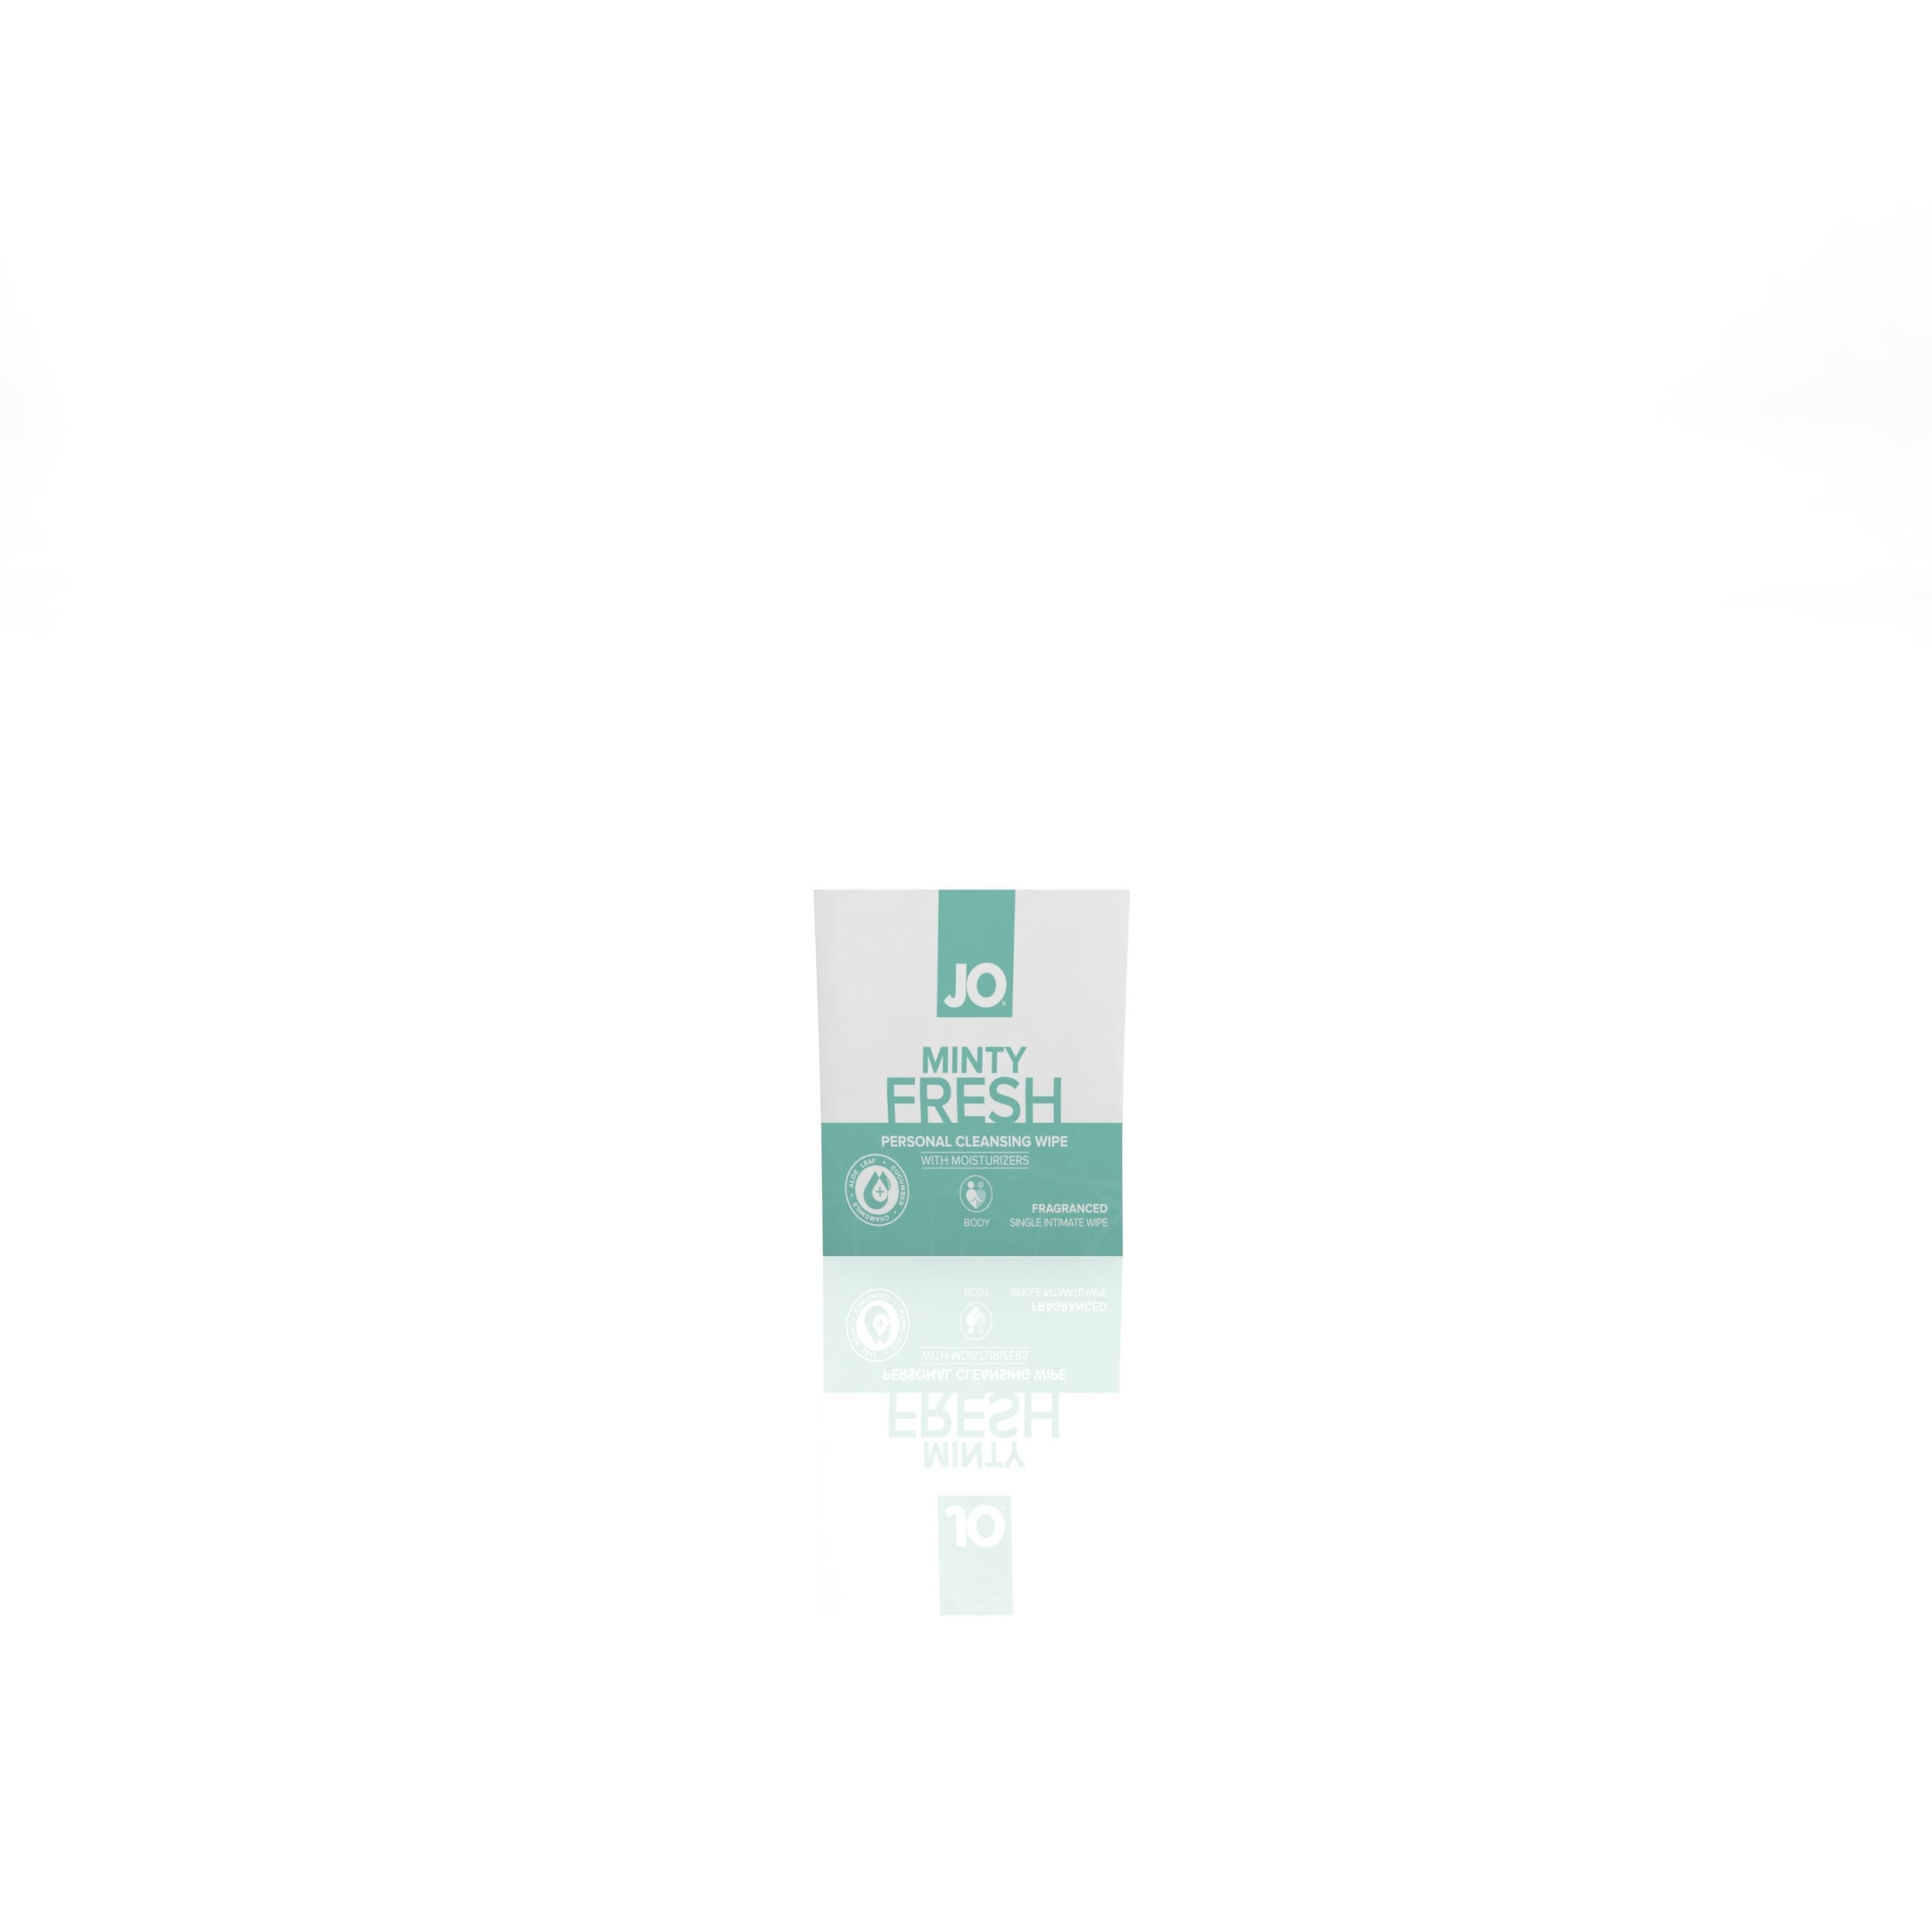 10221 - JO PERSONAL CLEANSING WIPES - MINTY FRESH - single pack MOQ 24 units - Includes Counter Display ISO.jpg